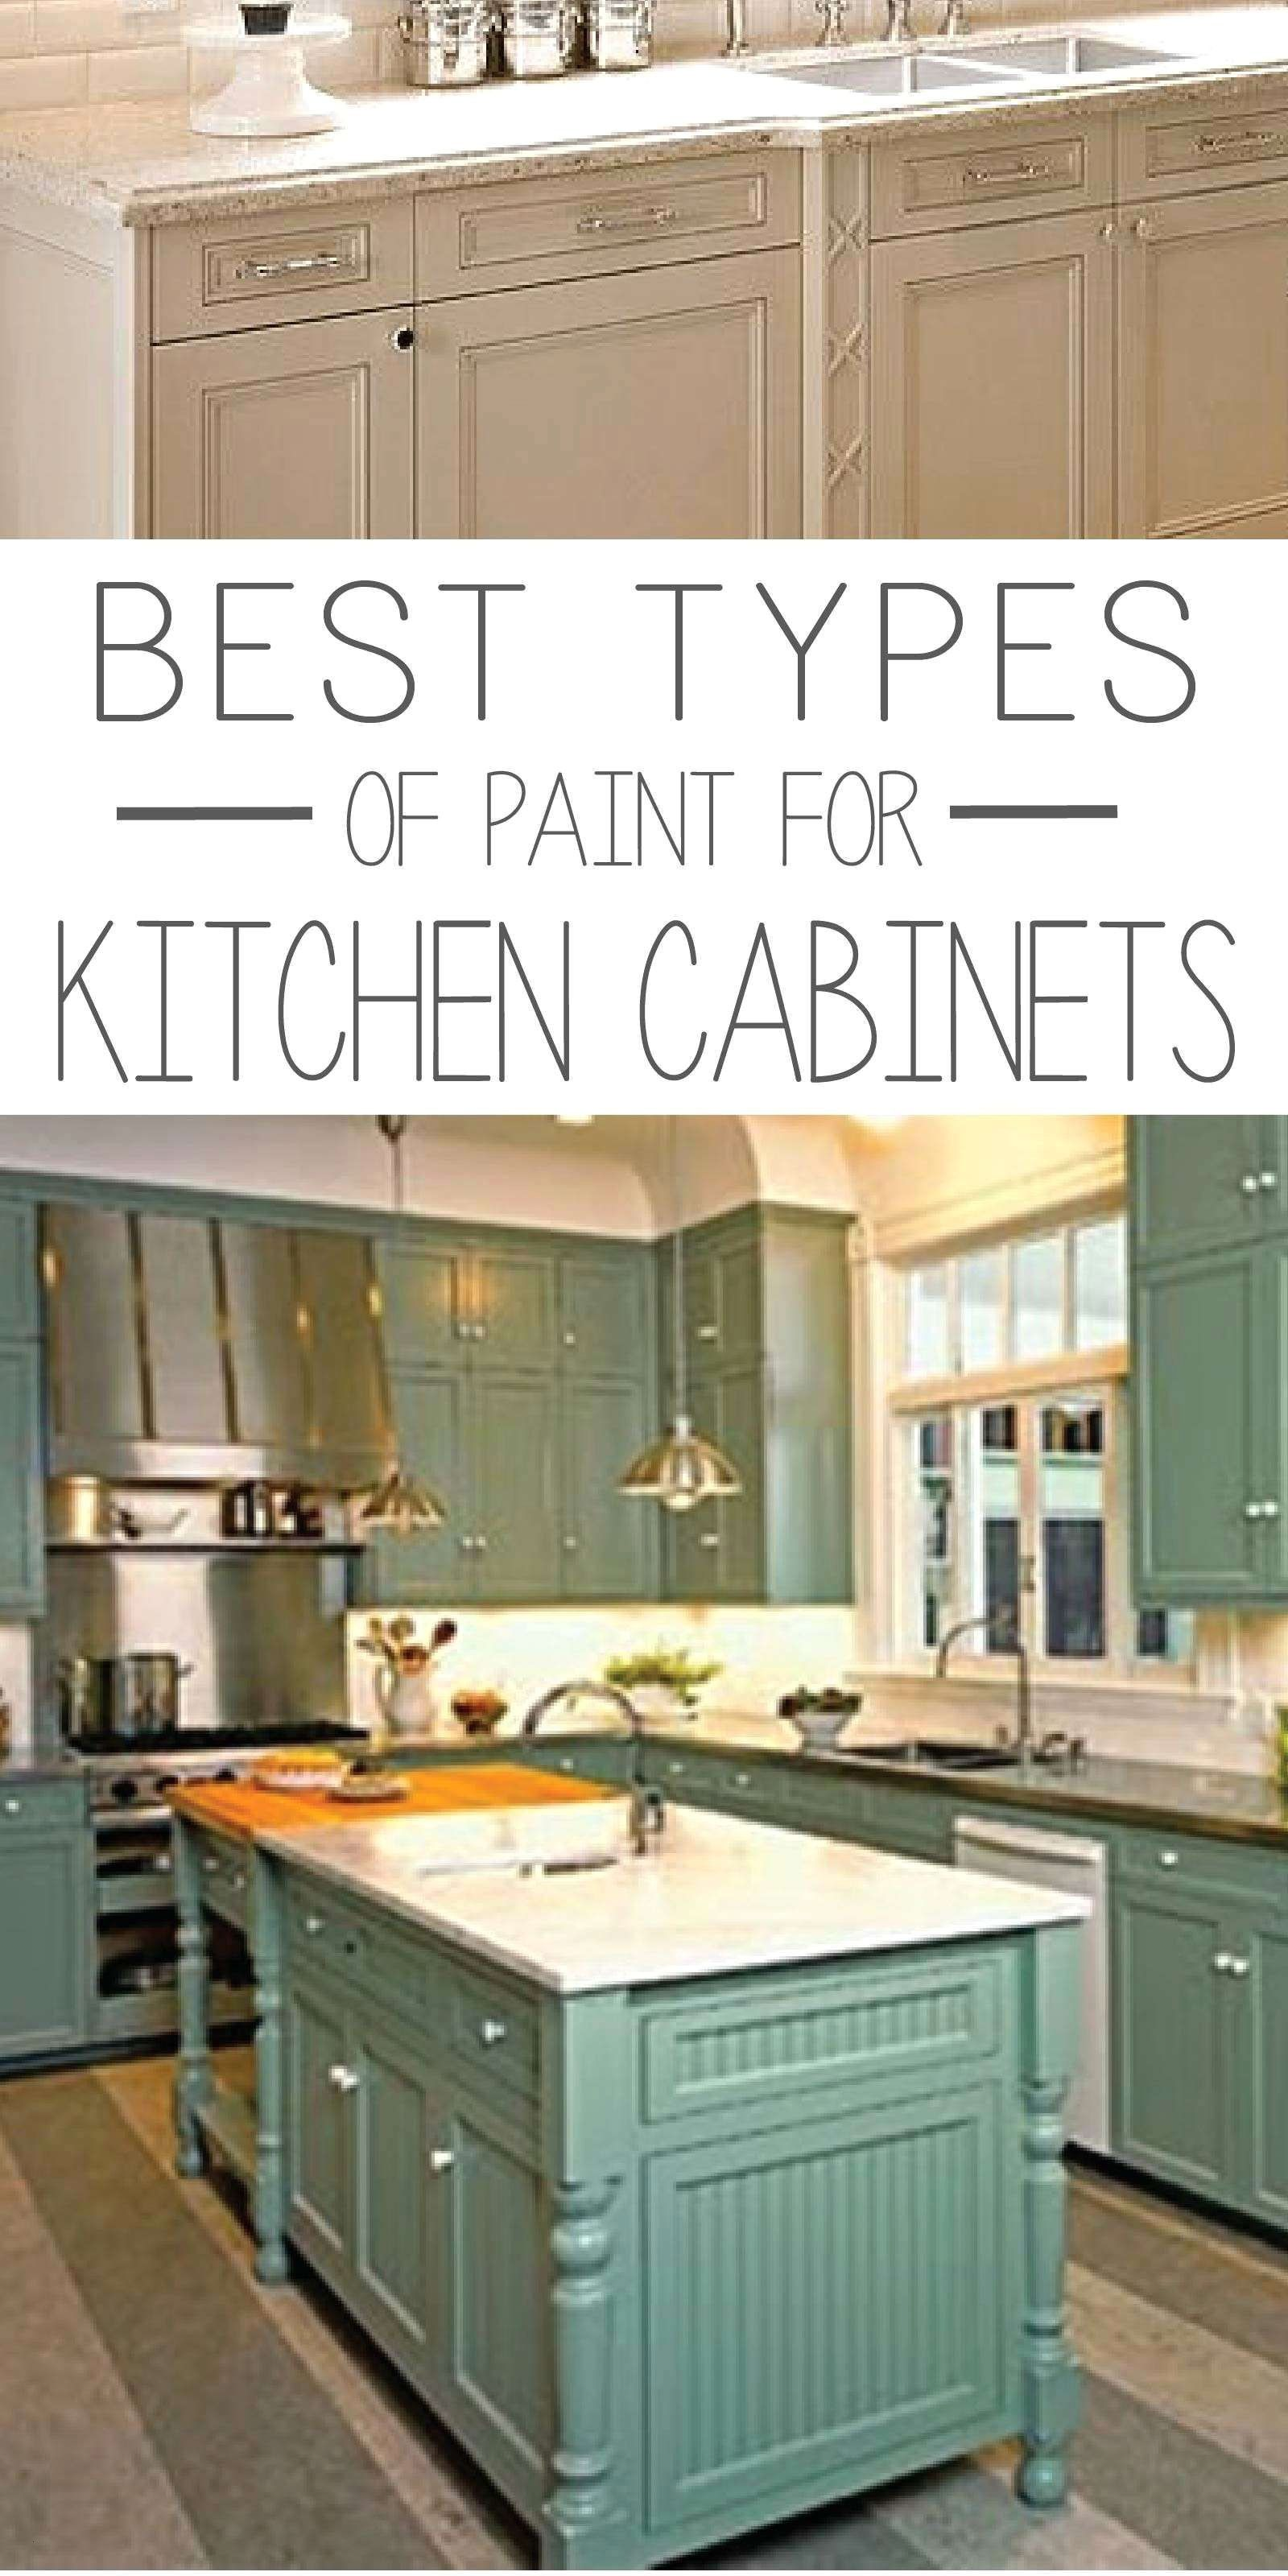 Luxury Kitchen Cabinet Stores Near Me – The Most Brilliant ...